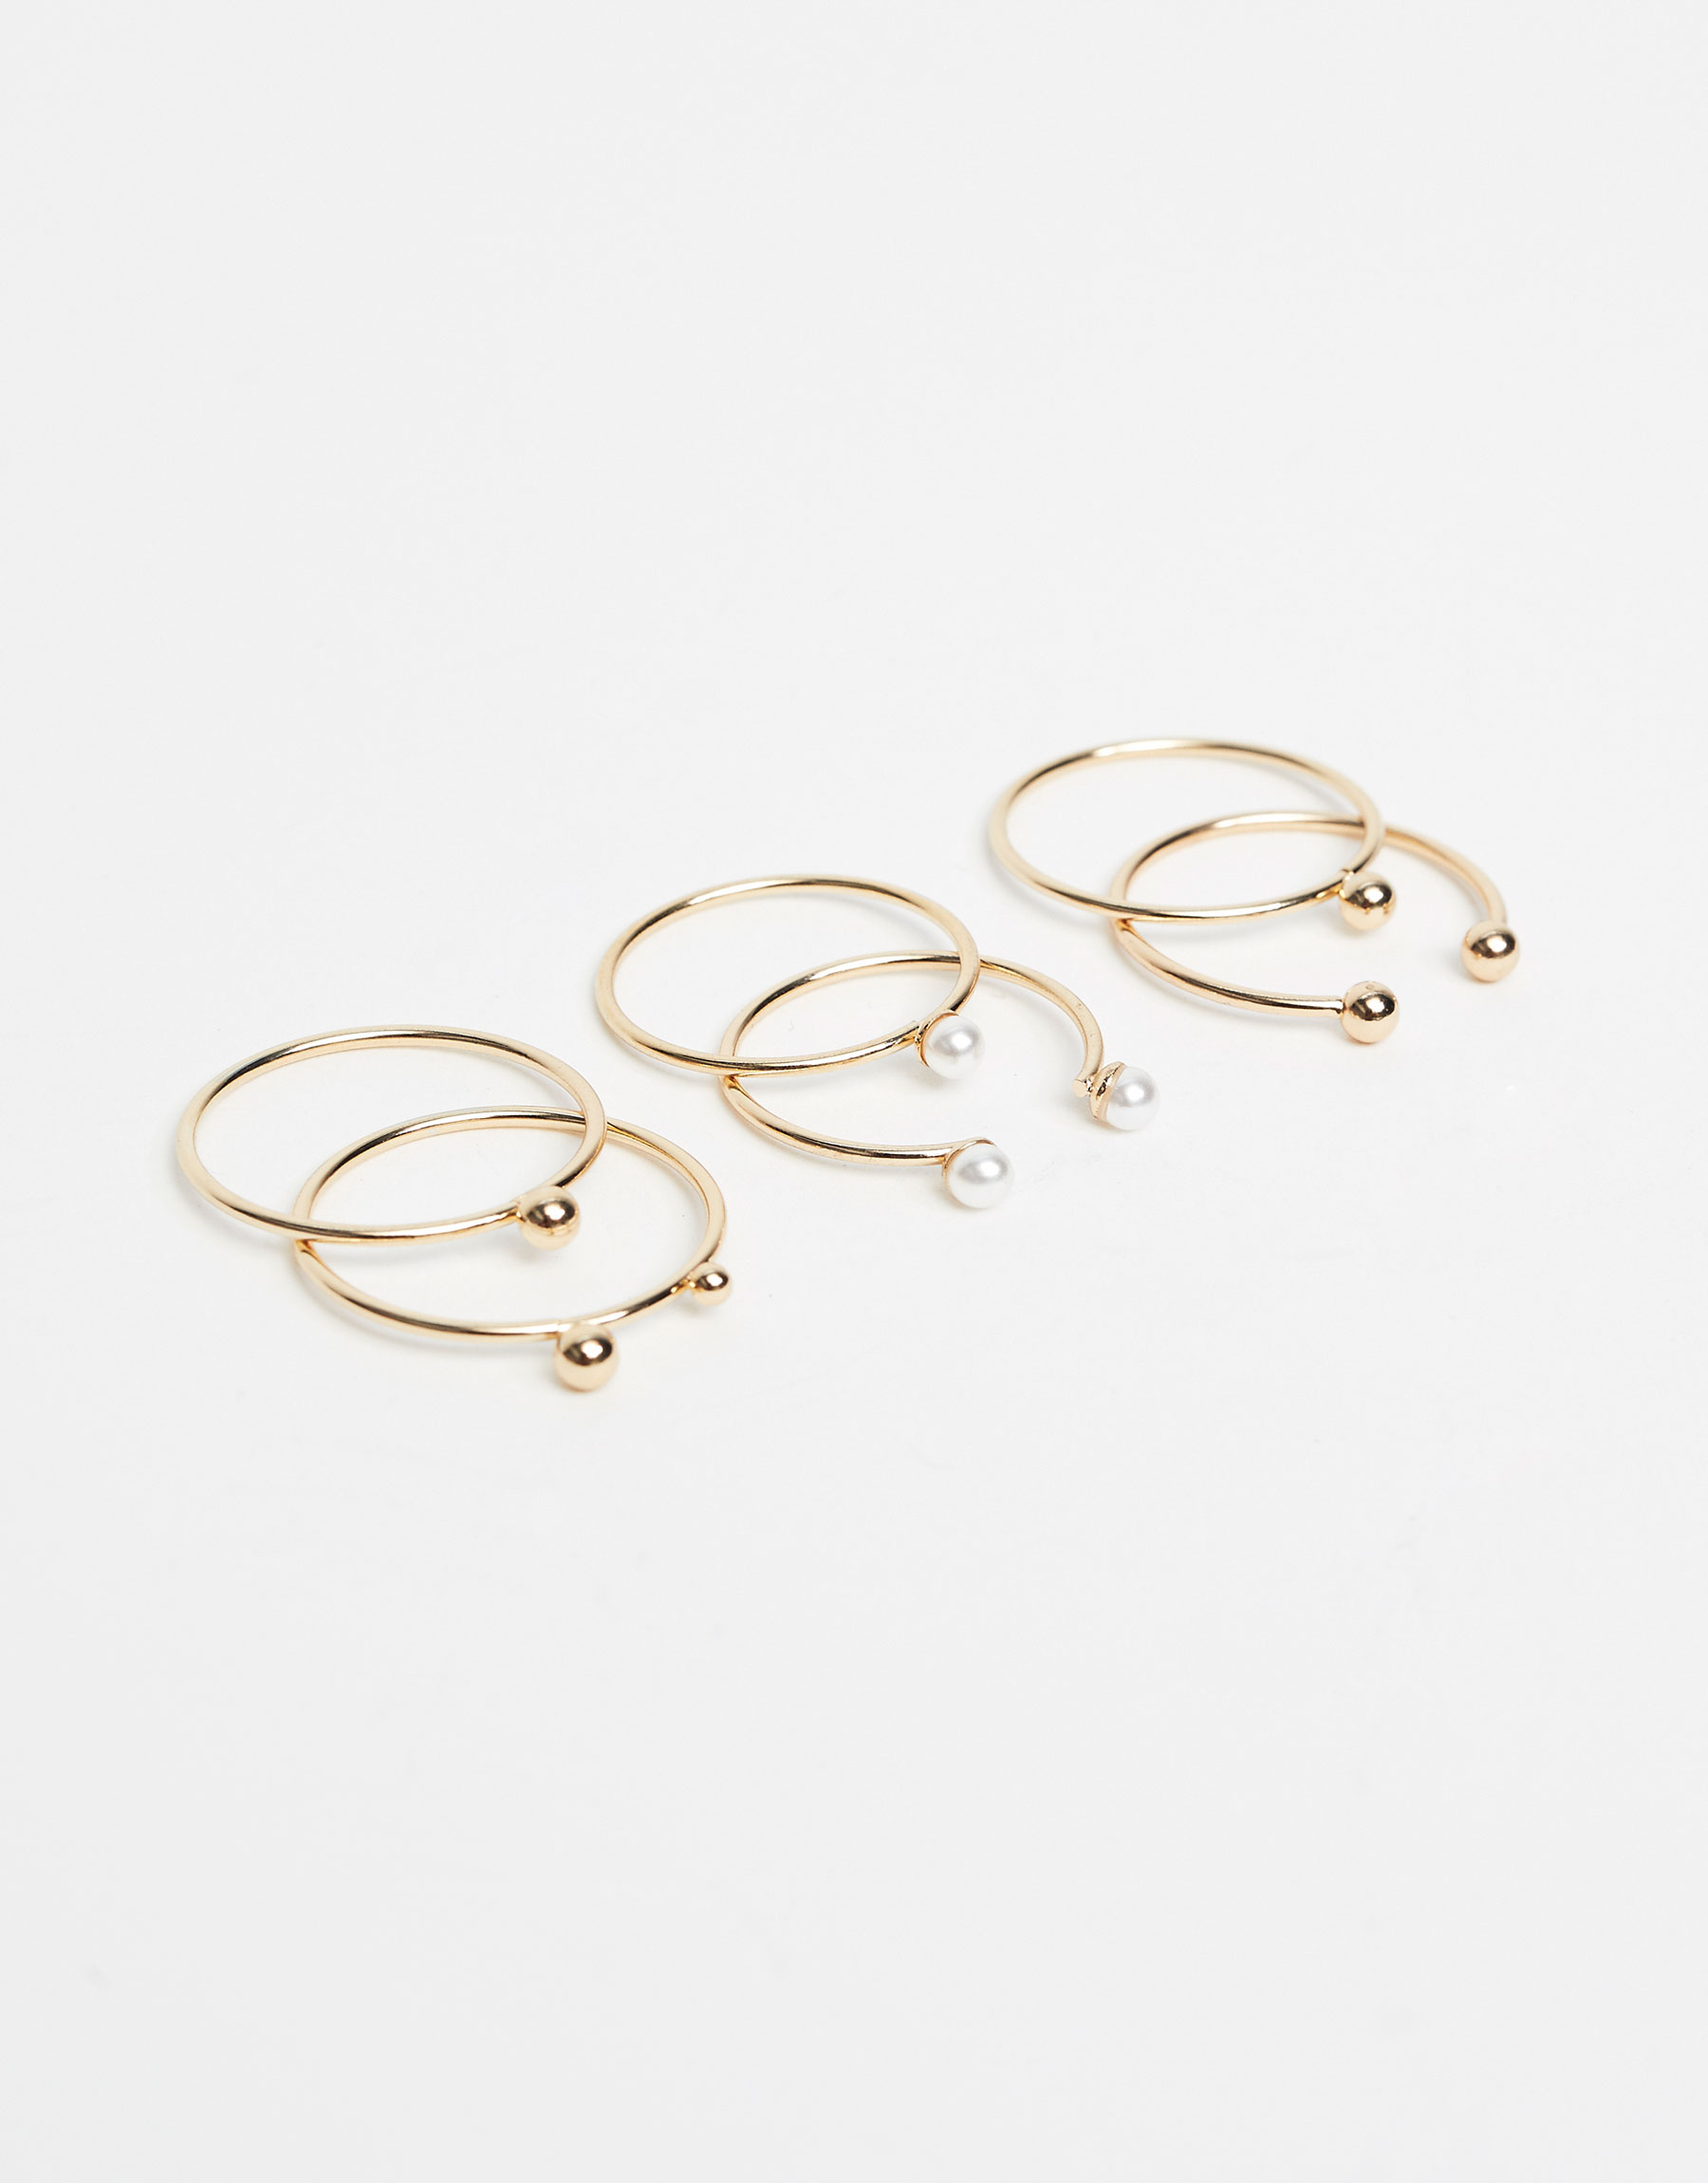 3-pack of minimalist rings